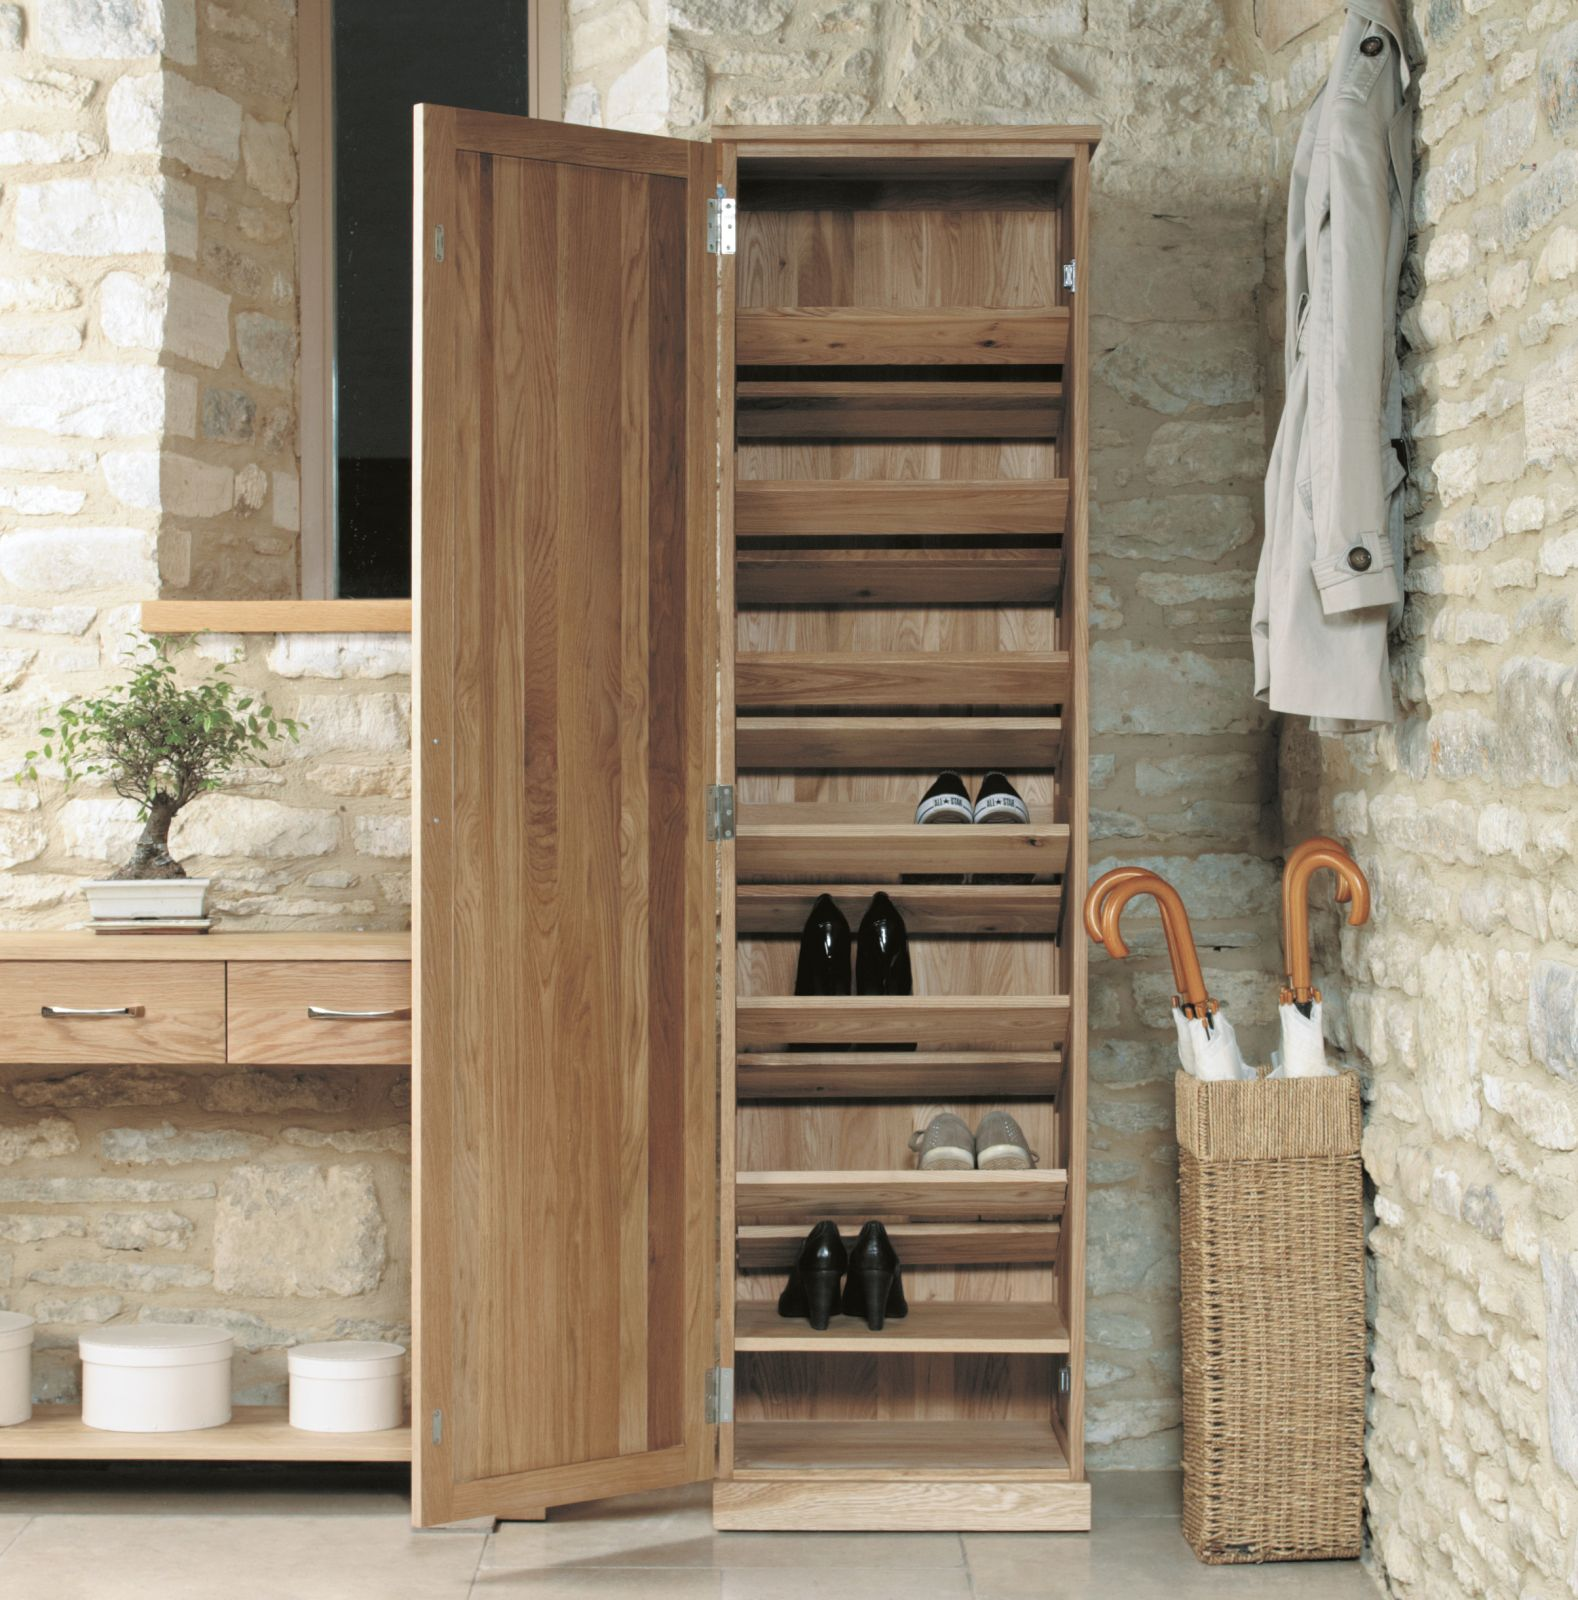 Mobel Solid Oak Furniture Shoe Storage Hallway Bench: Mobel Solid Modern Oak Hallway Furniture Tall Shoe Storage